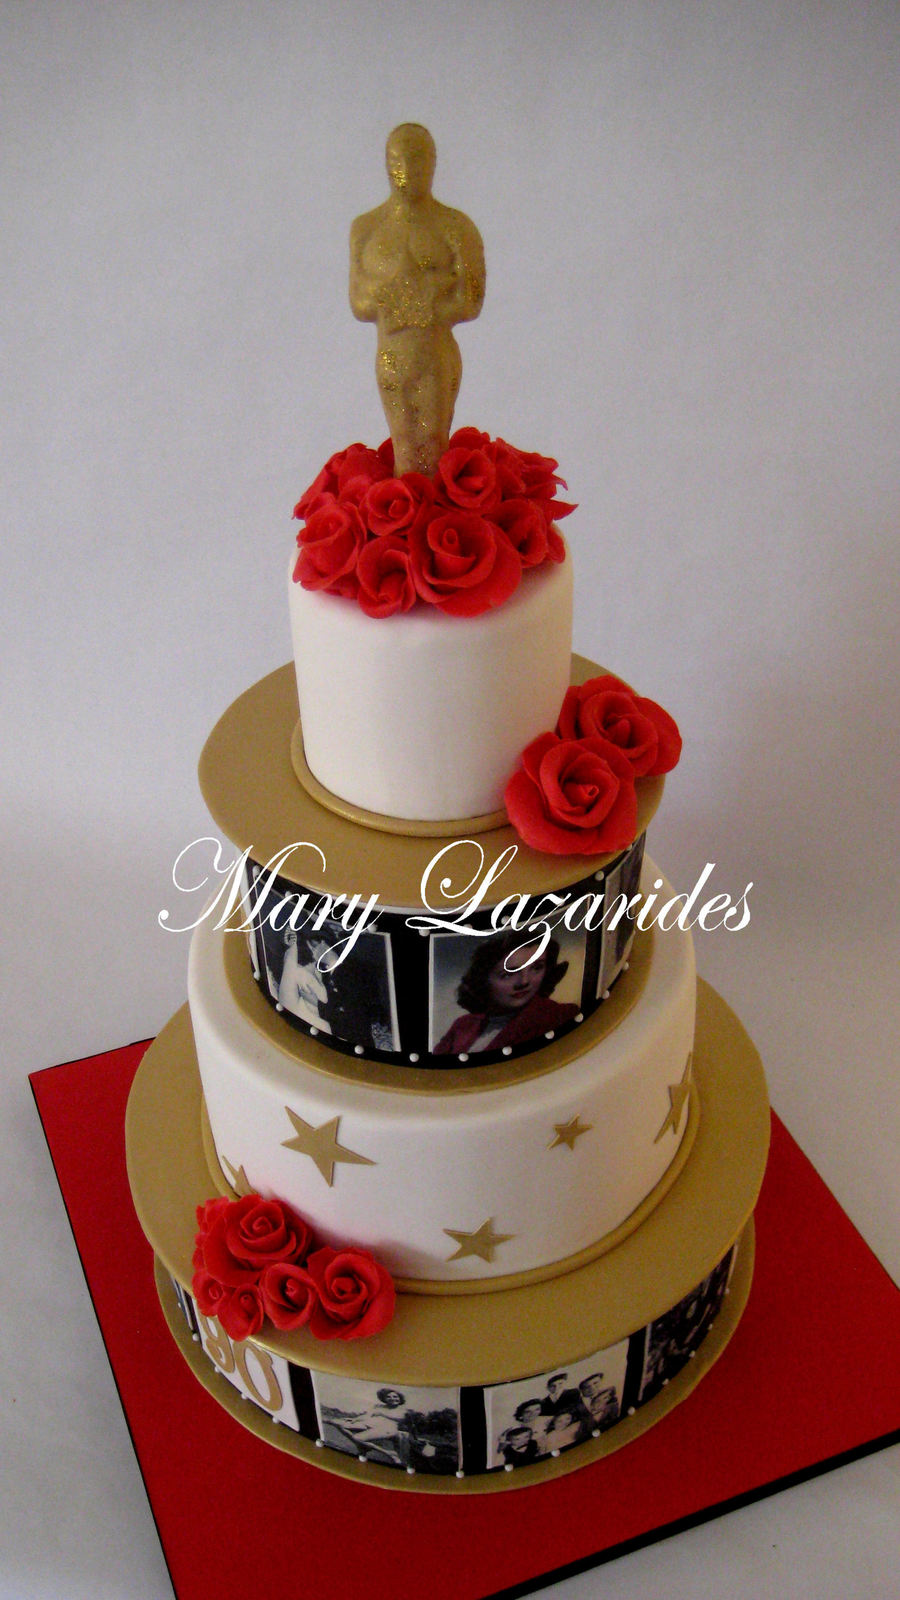 Hollywood Oscar Birthday Cake on oscar party ideas and recipes